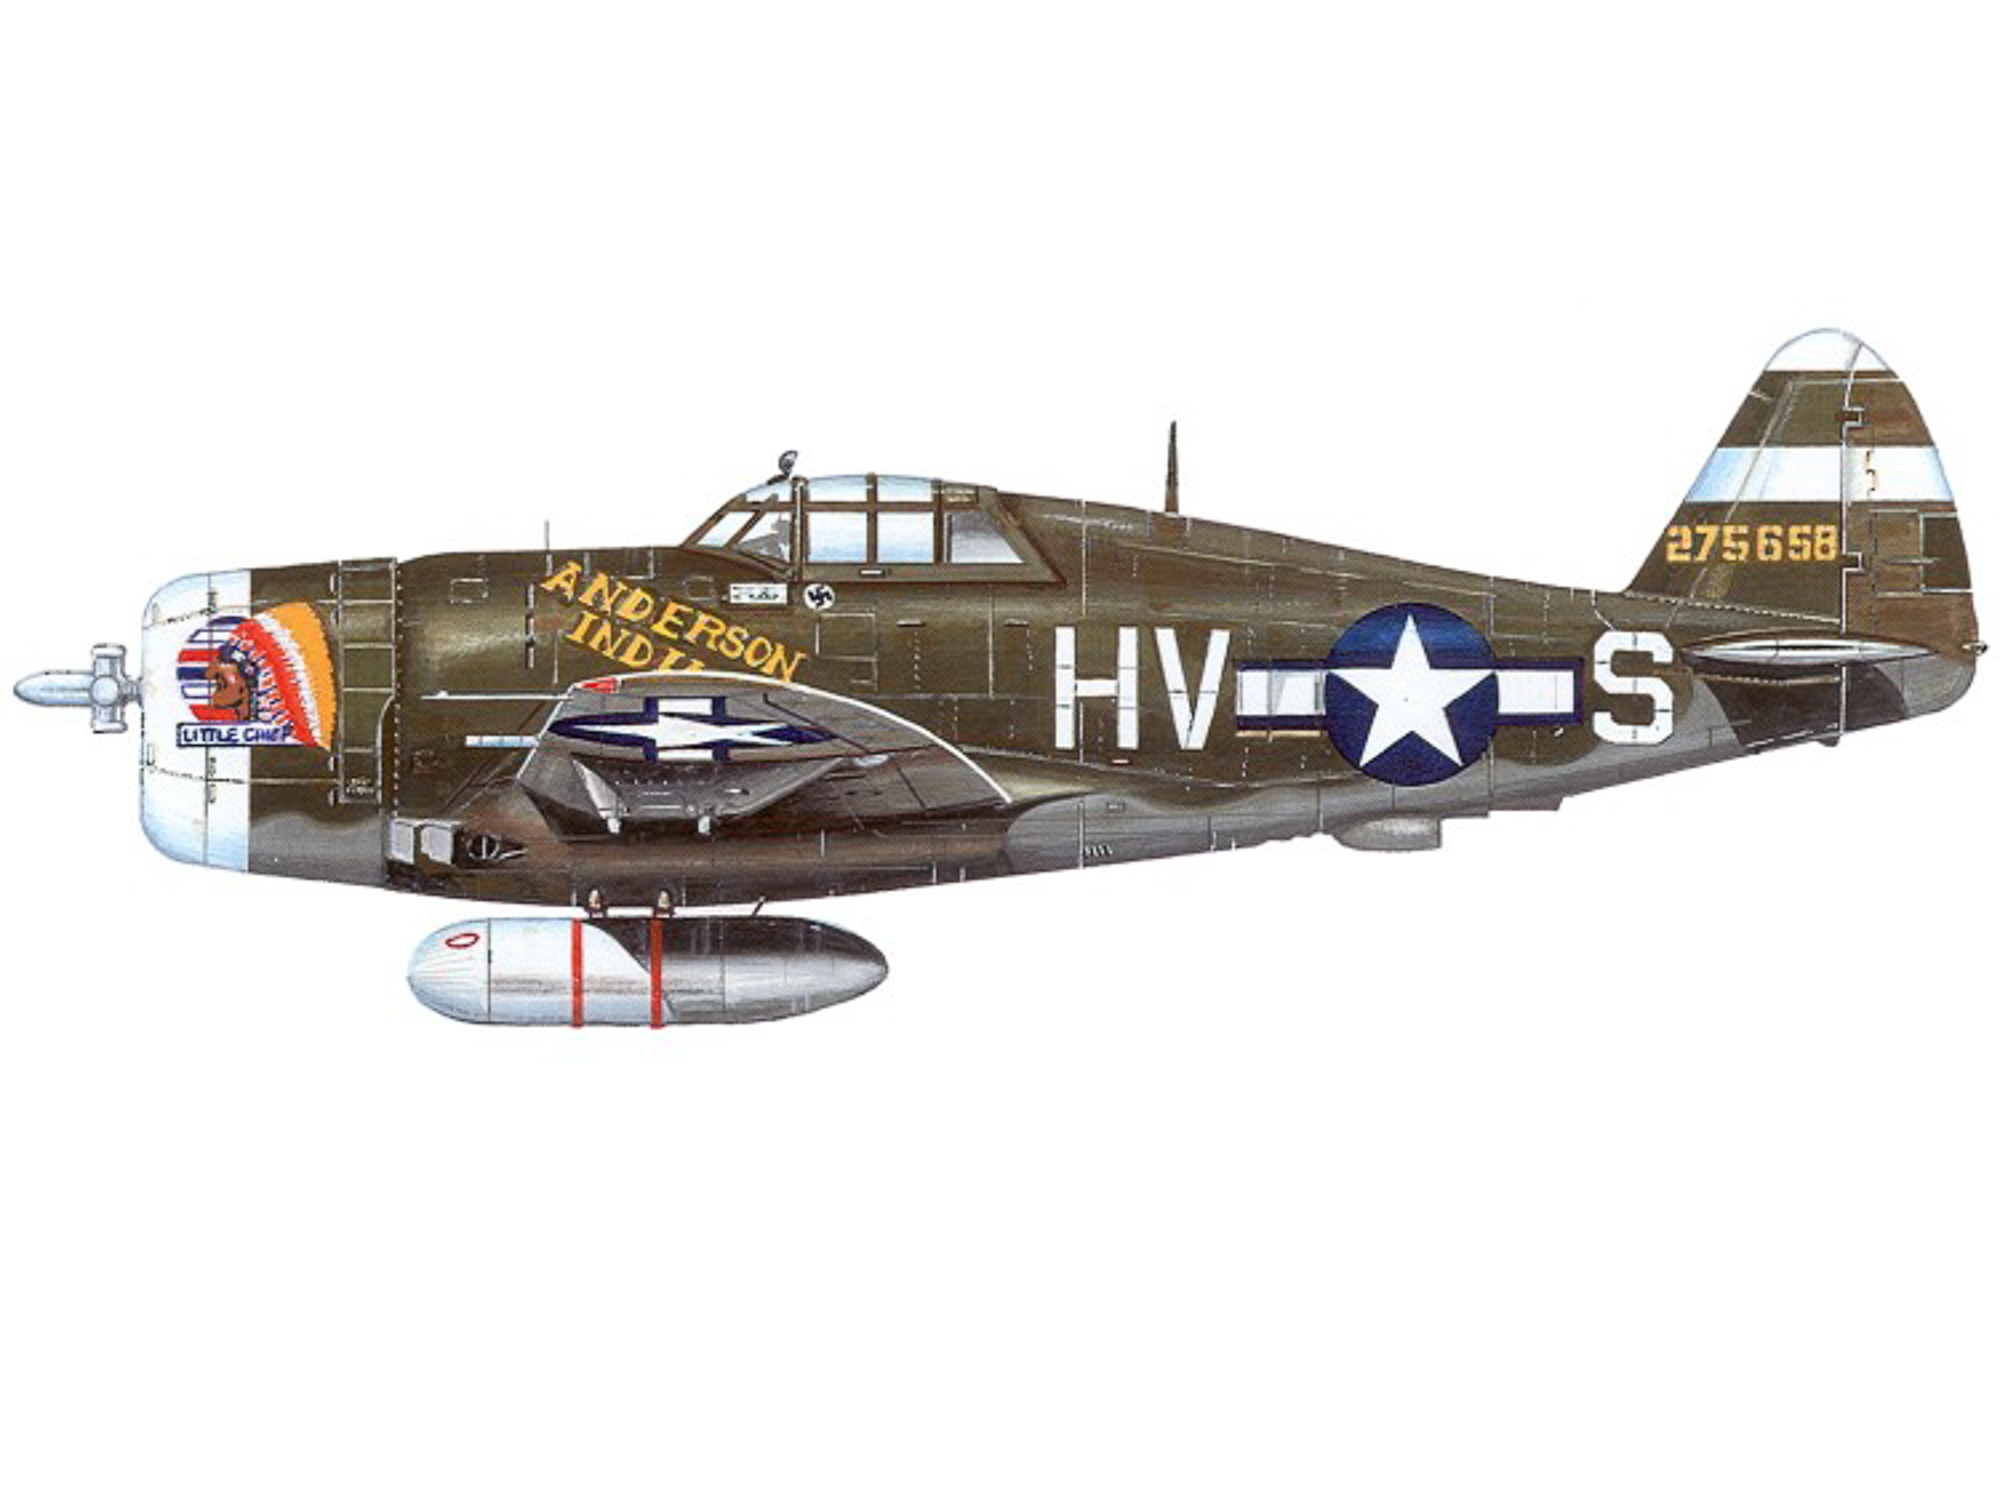 P-47D – Little Chief - Anderson Indian - 42-75658